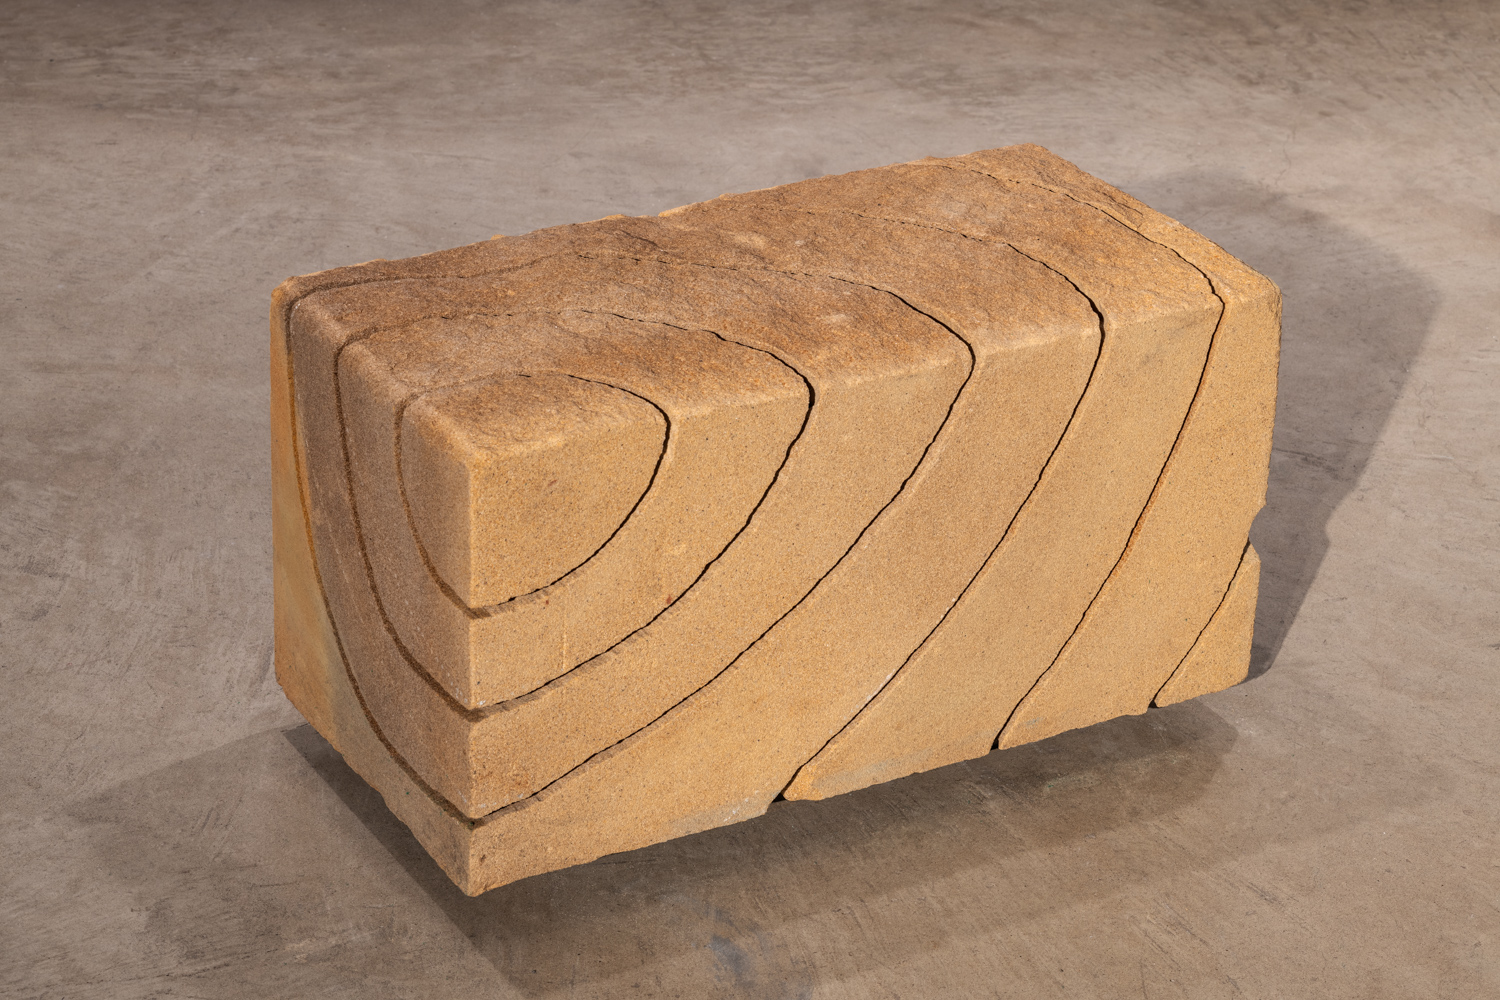 Maria Fernanda Cardoso, One Concentric Circle from the Sandstone